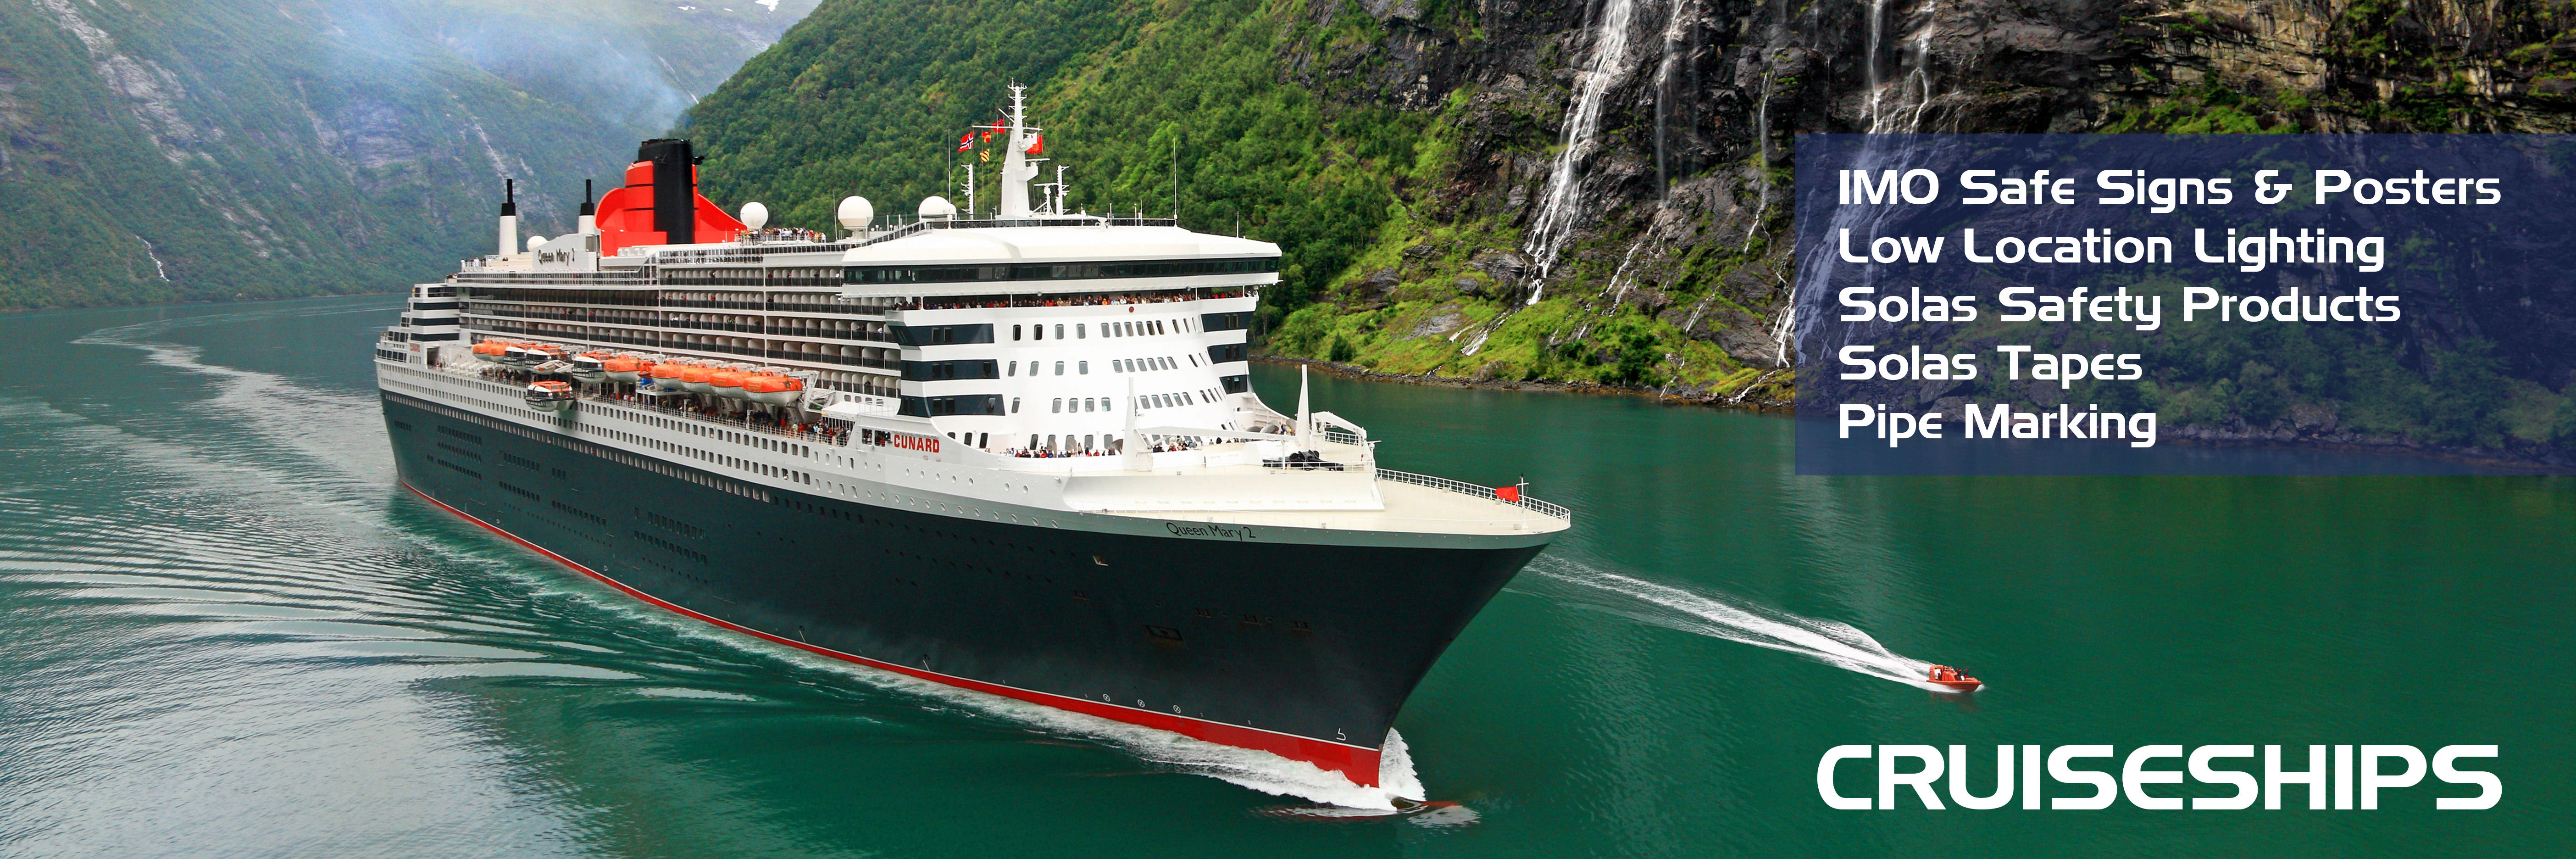 CRUISESHIPS T-ISS Safety Suppliers